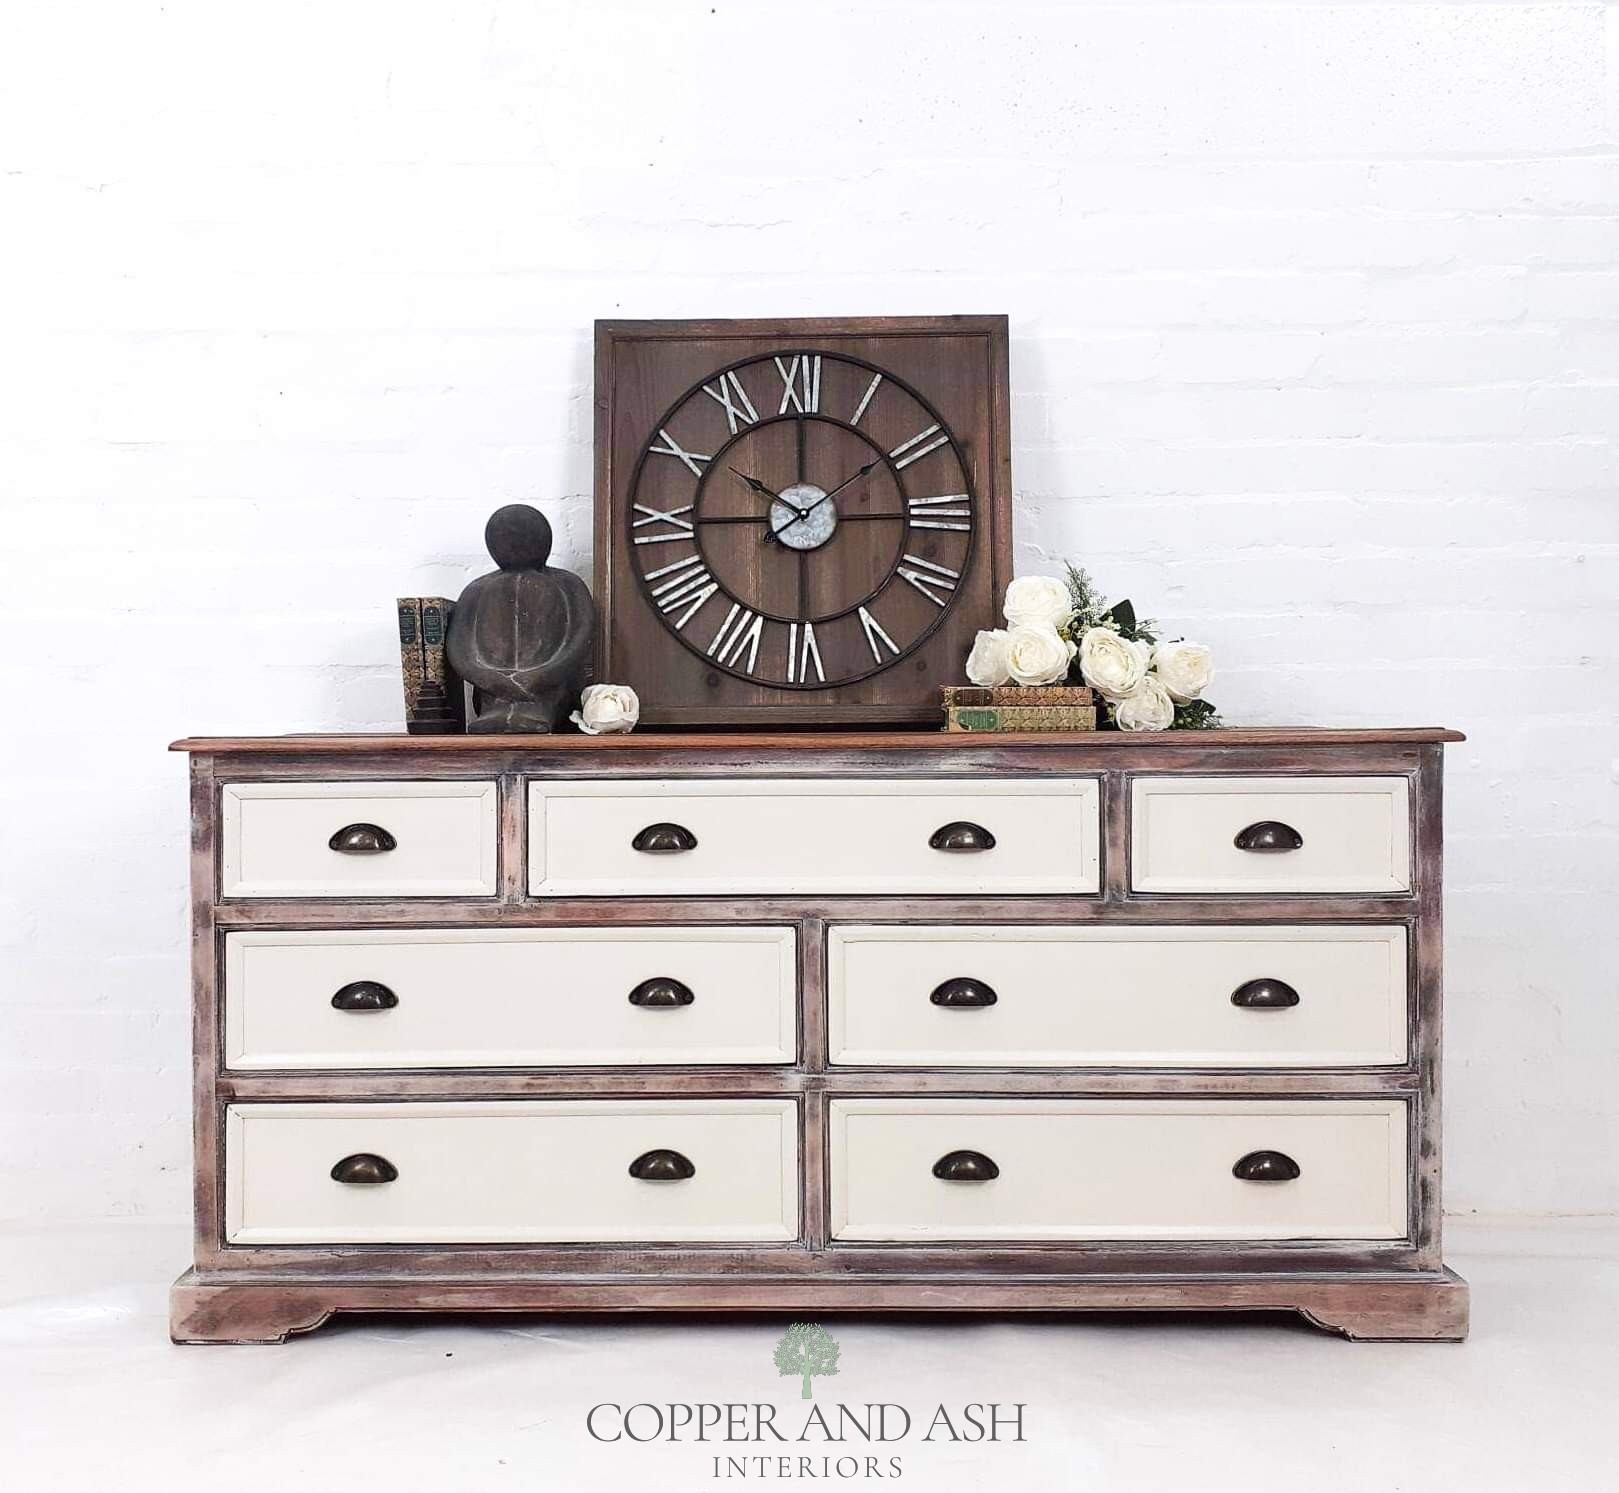 The House of Upcycling: Copper & Ash Upcycled Merchant's Chest